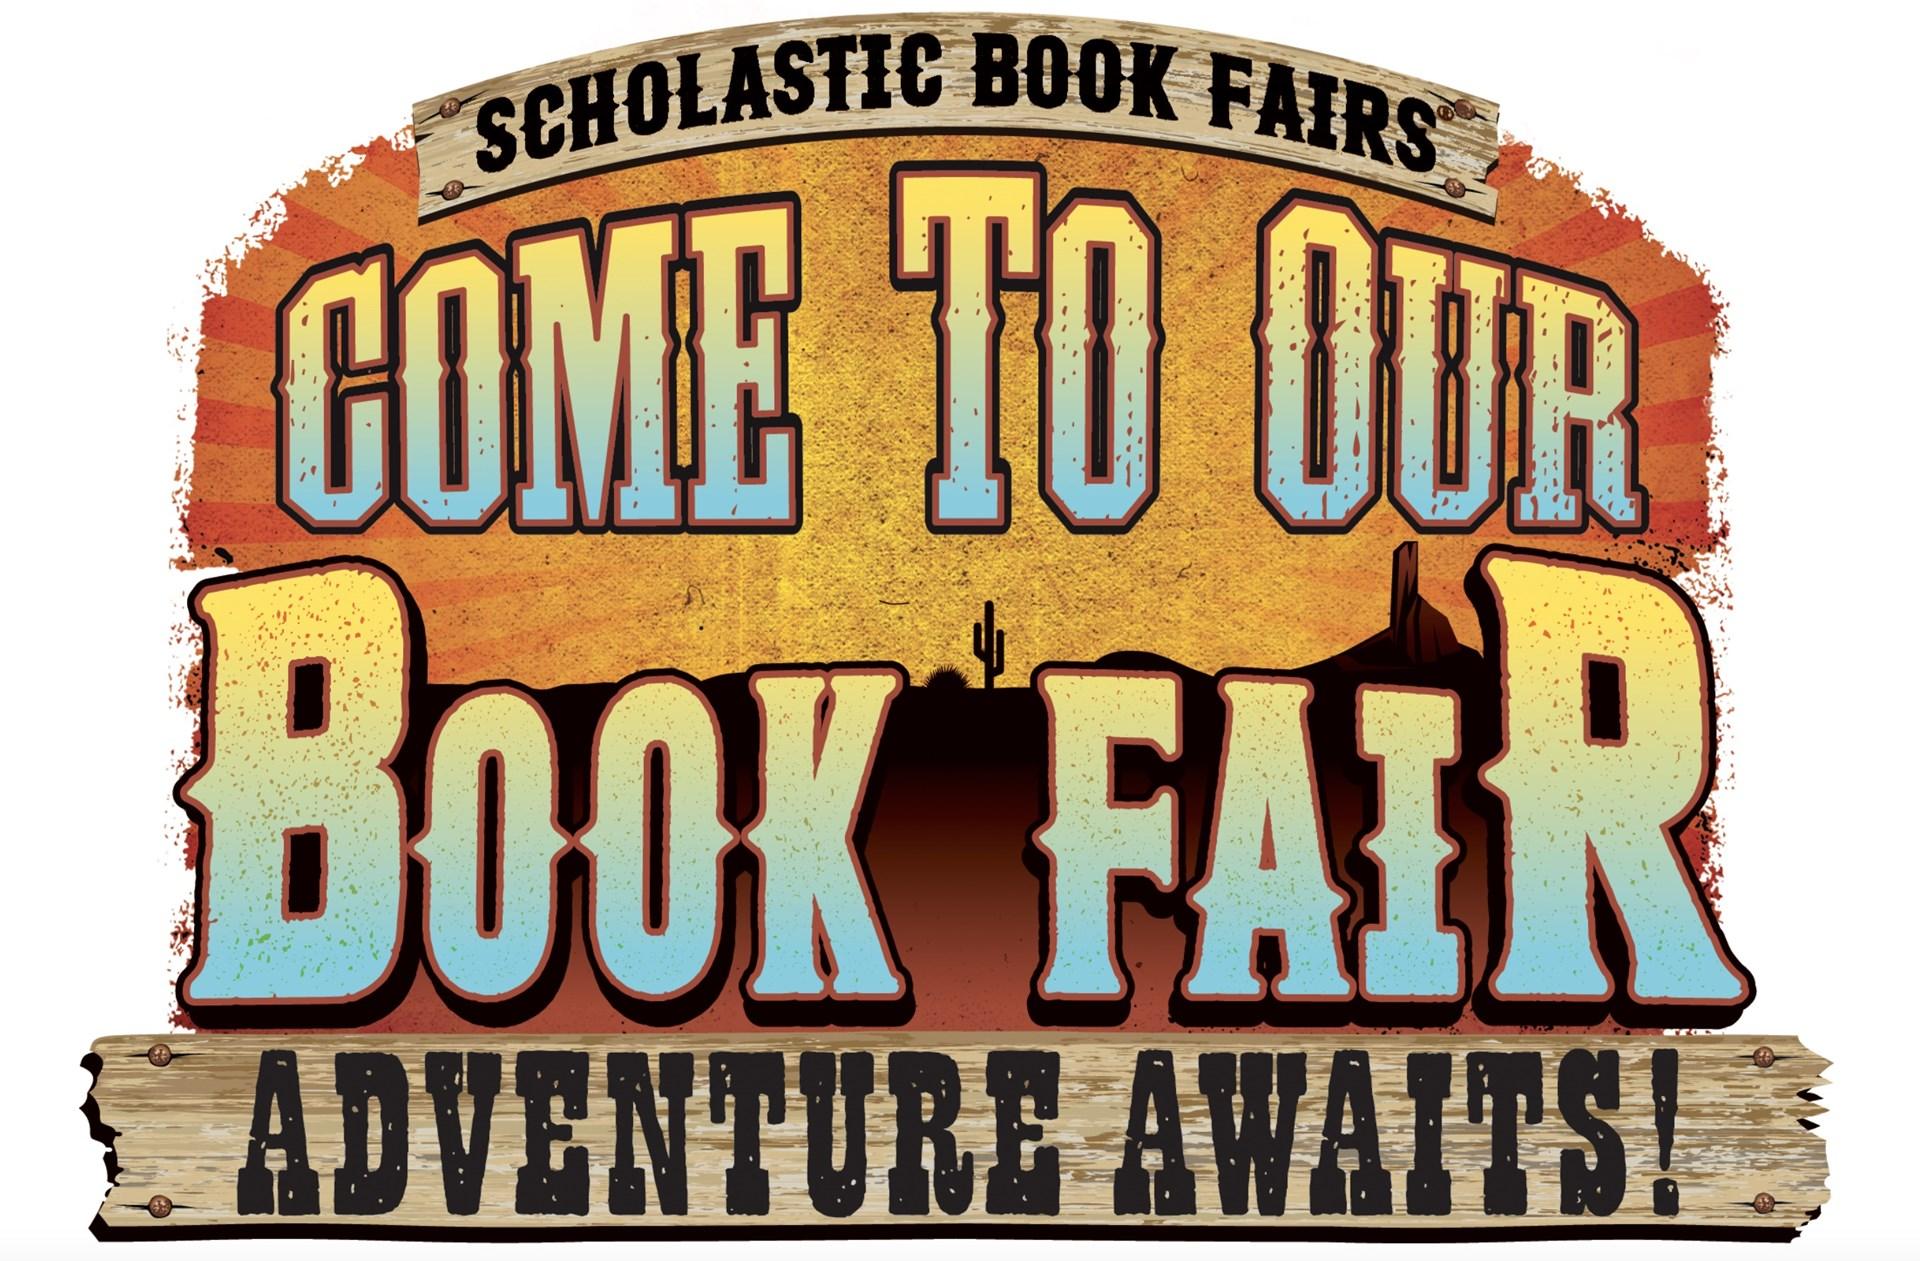 Capilano Book Fair Dec 11 to 14